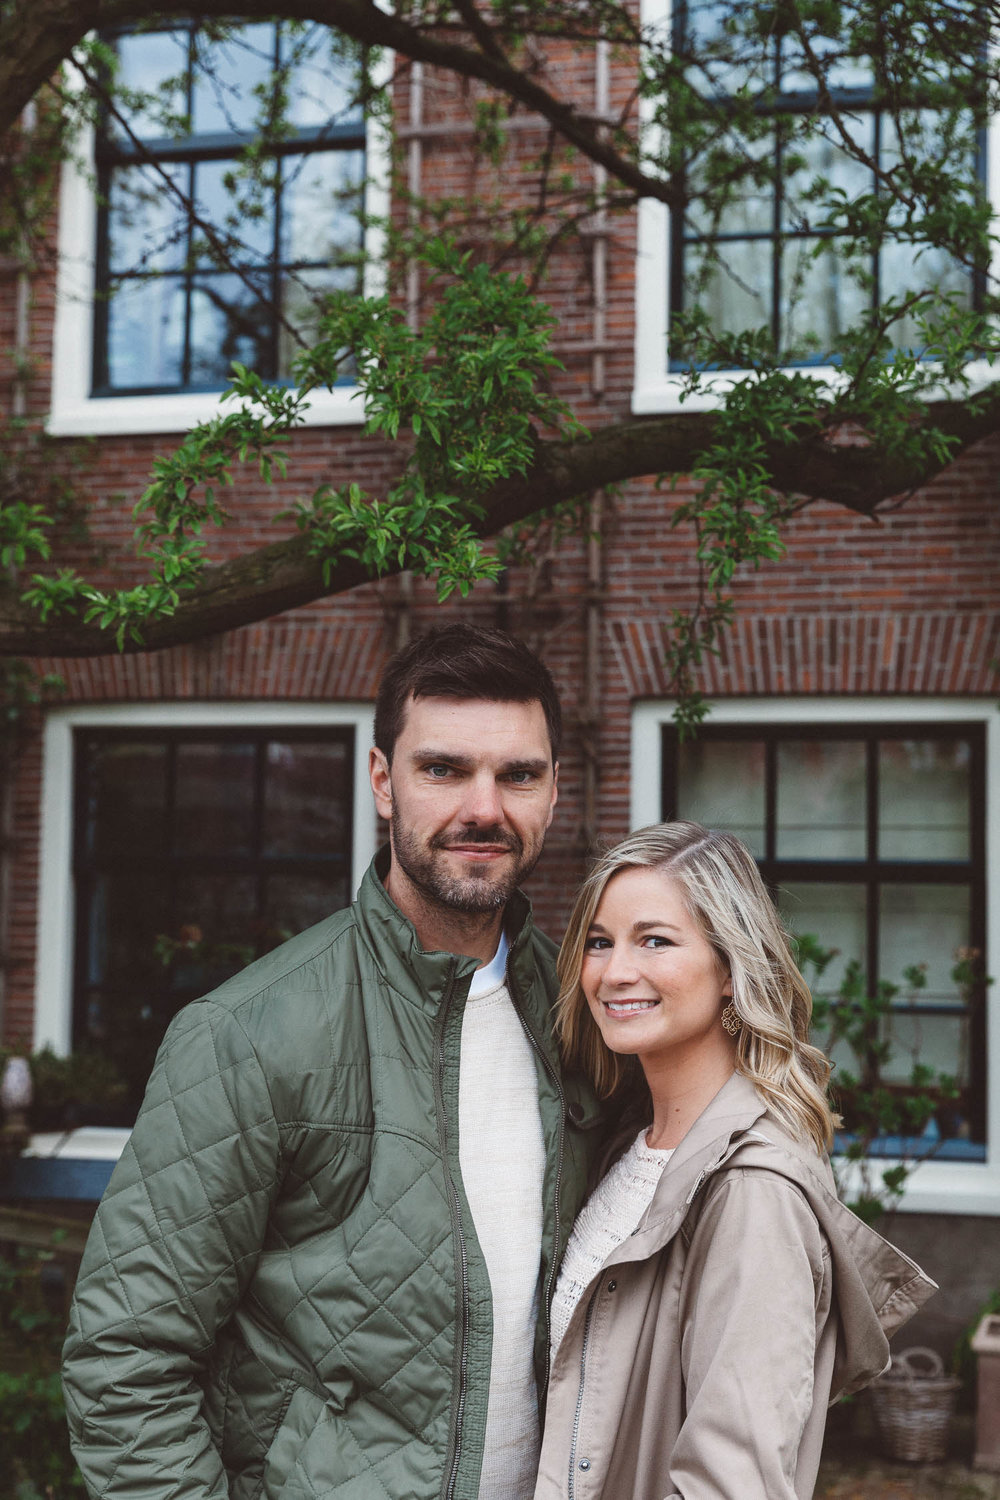 Engagement-shoot-Jessica-and-JJ-by-On-a-hazy-morning-Amsterdam-3.jpg